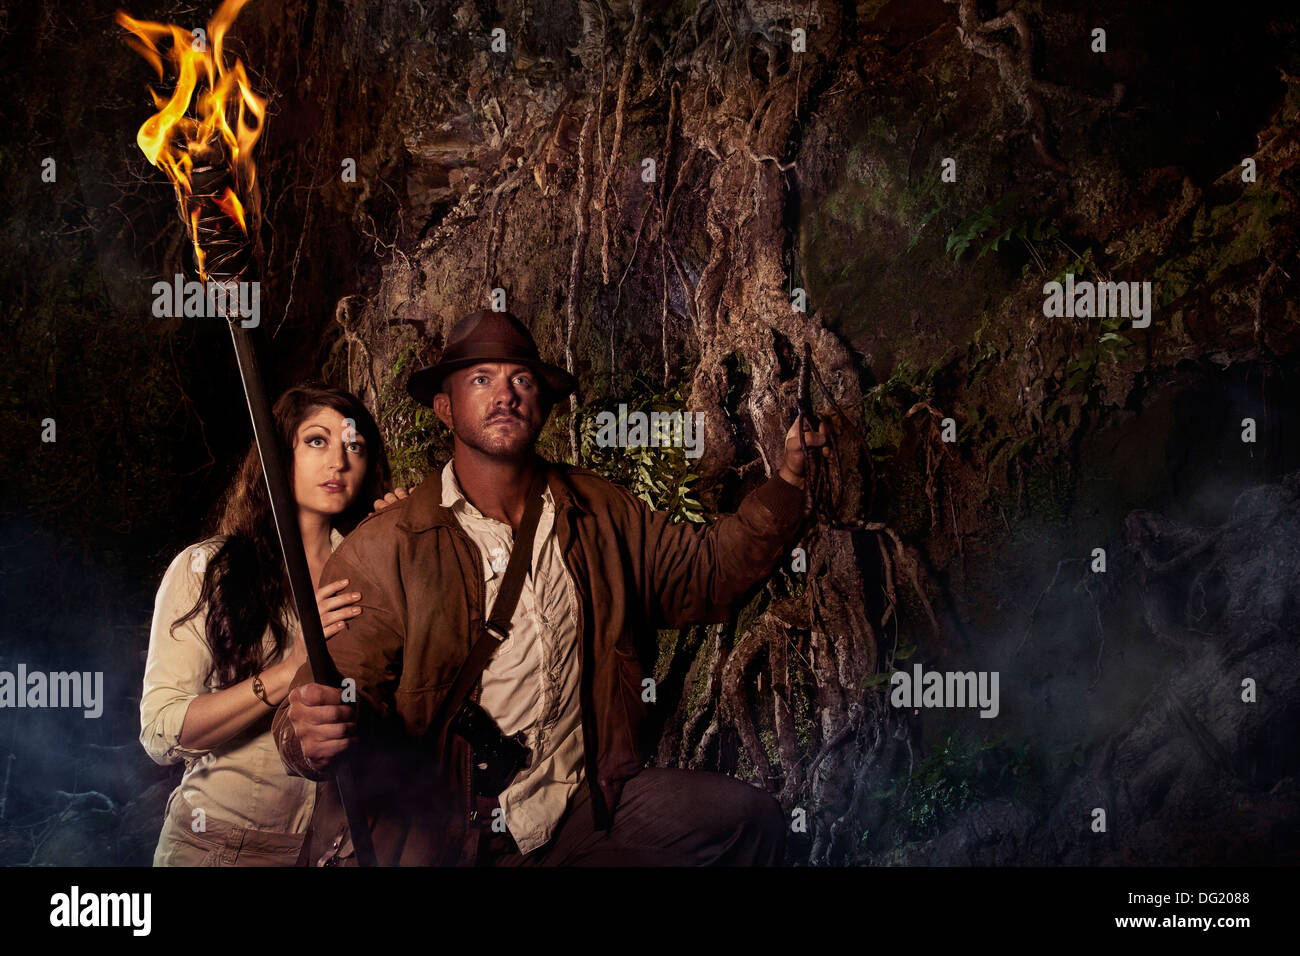 Indiana Jones styled adventure hunter in cave with woman carrying torch - Stock Image